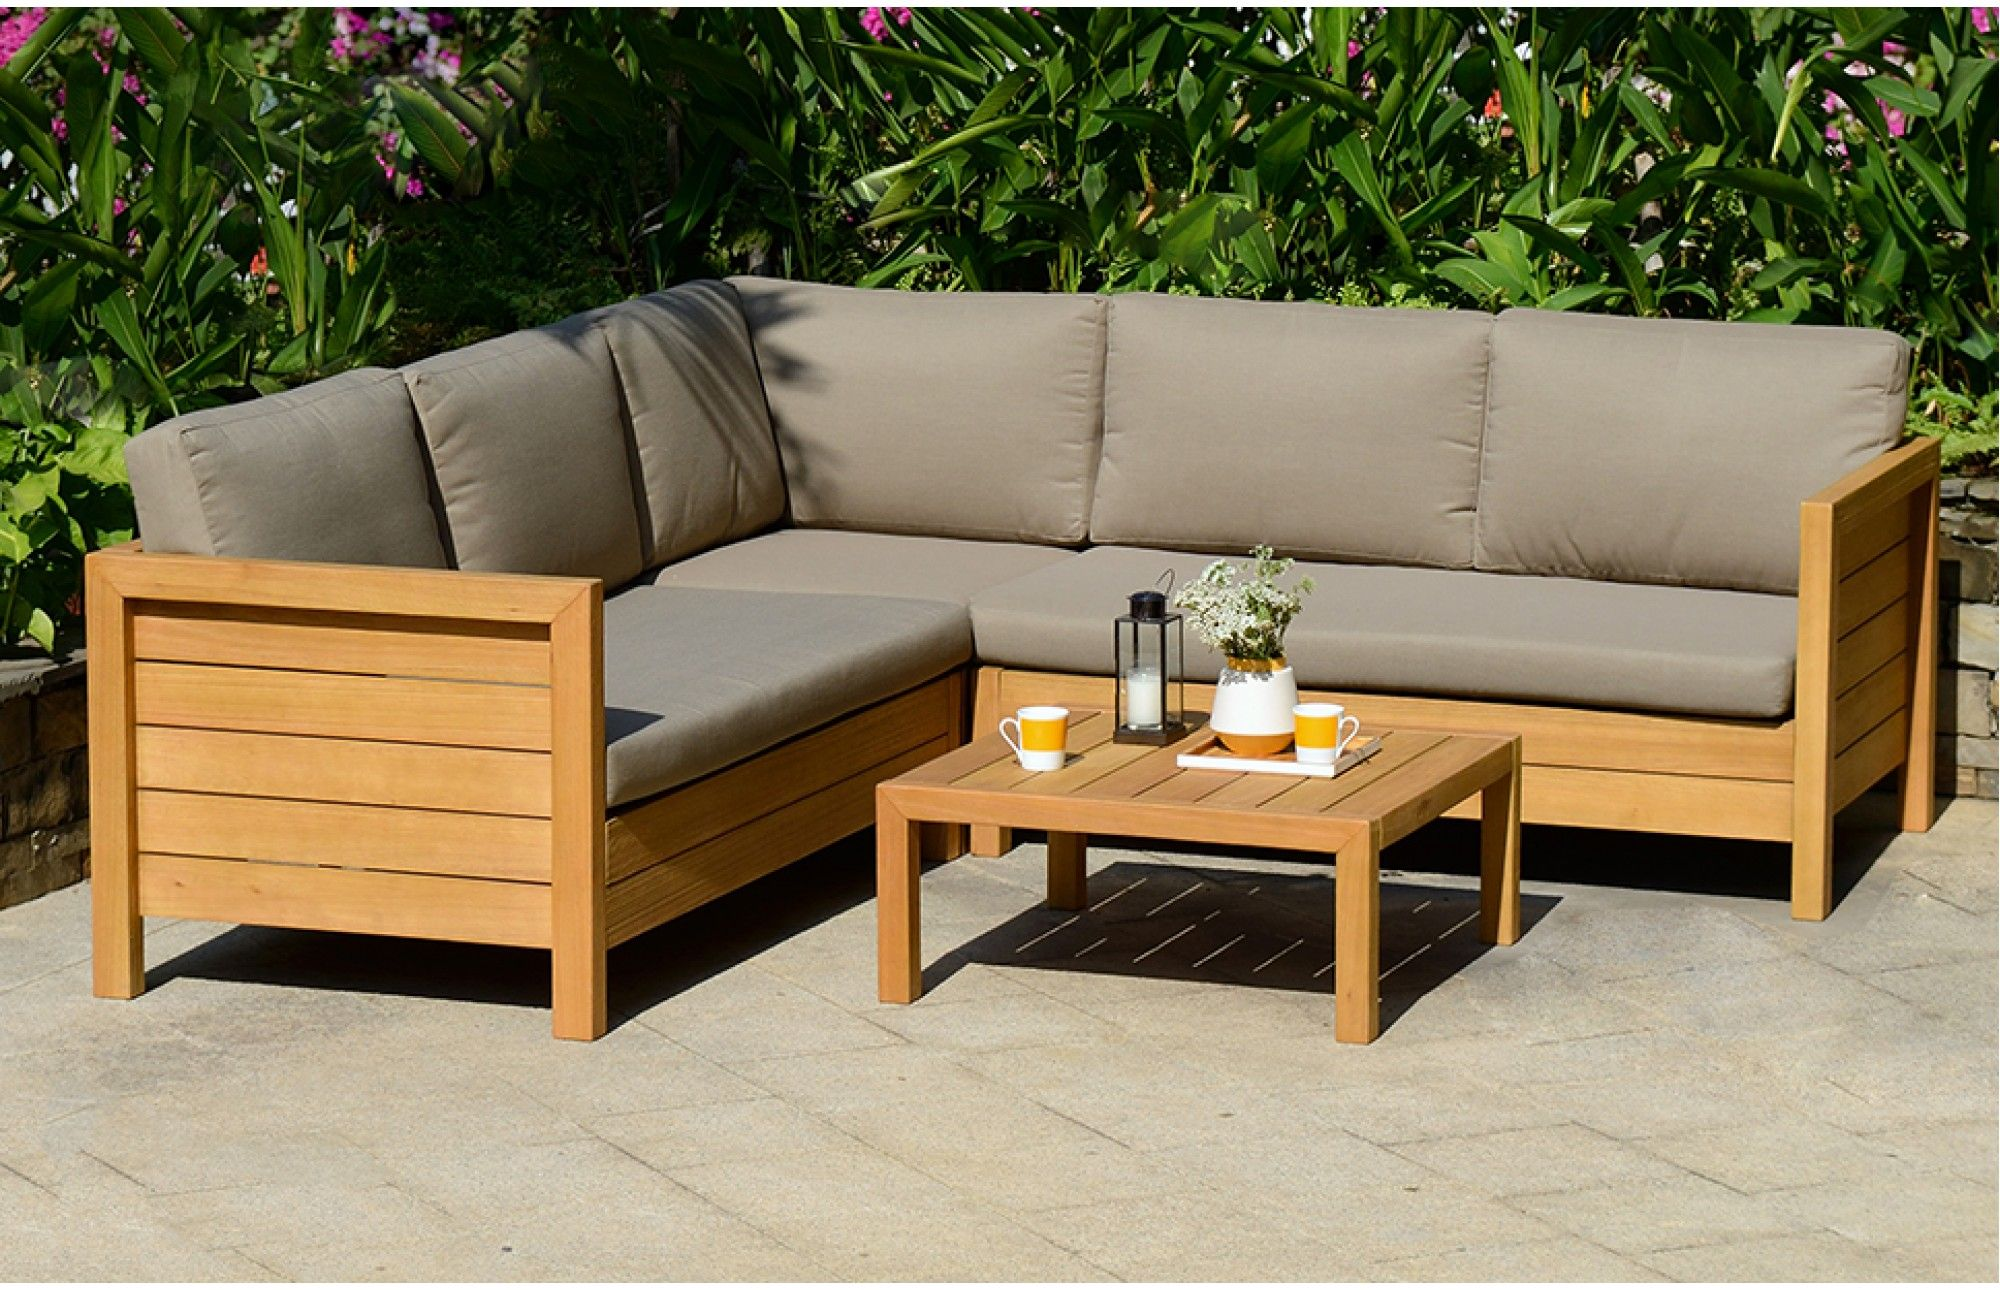 This Lodge Garden Set Comes In A Beautiful Teak Look Finish Giving This Elegantly Simple Set A Modern Twist Garden Sofa Set Sofa Home Sitting Room Decor